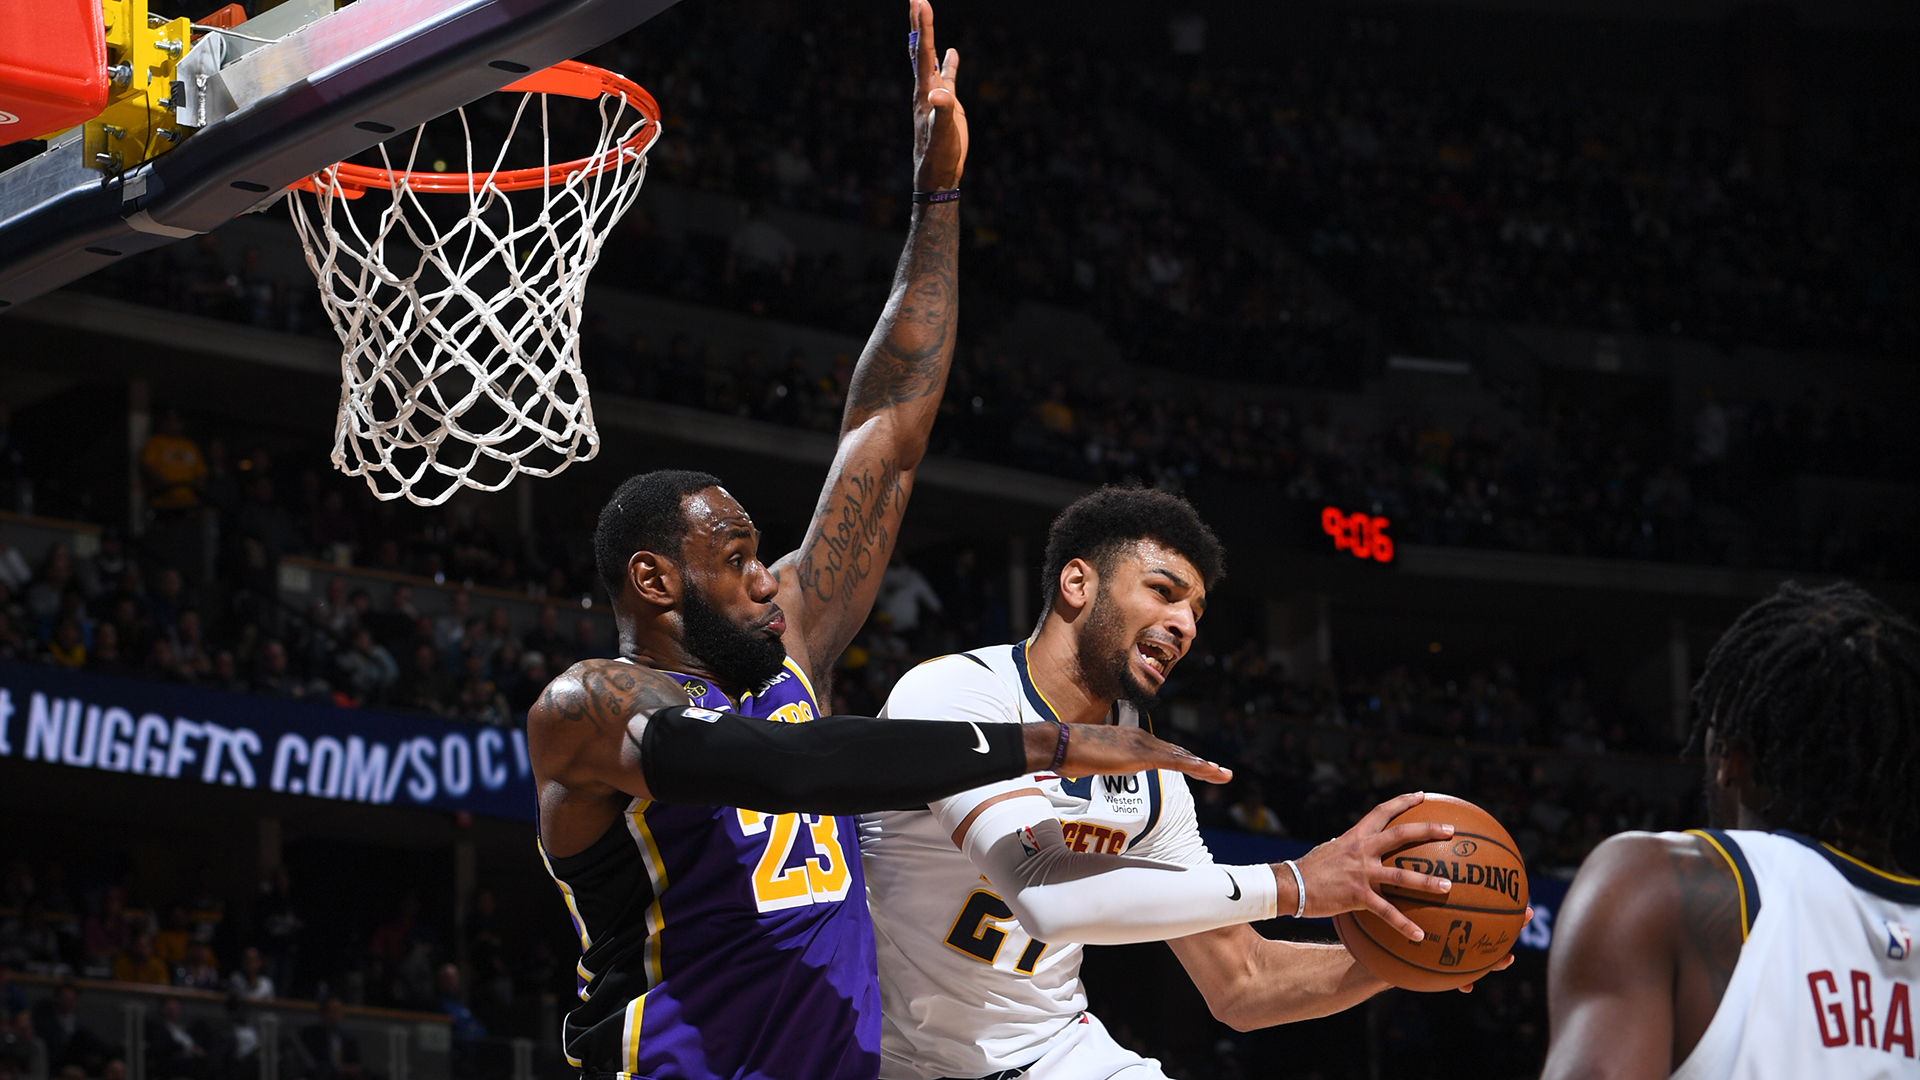 Lakers @ Nuggets